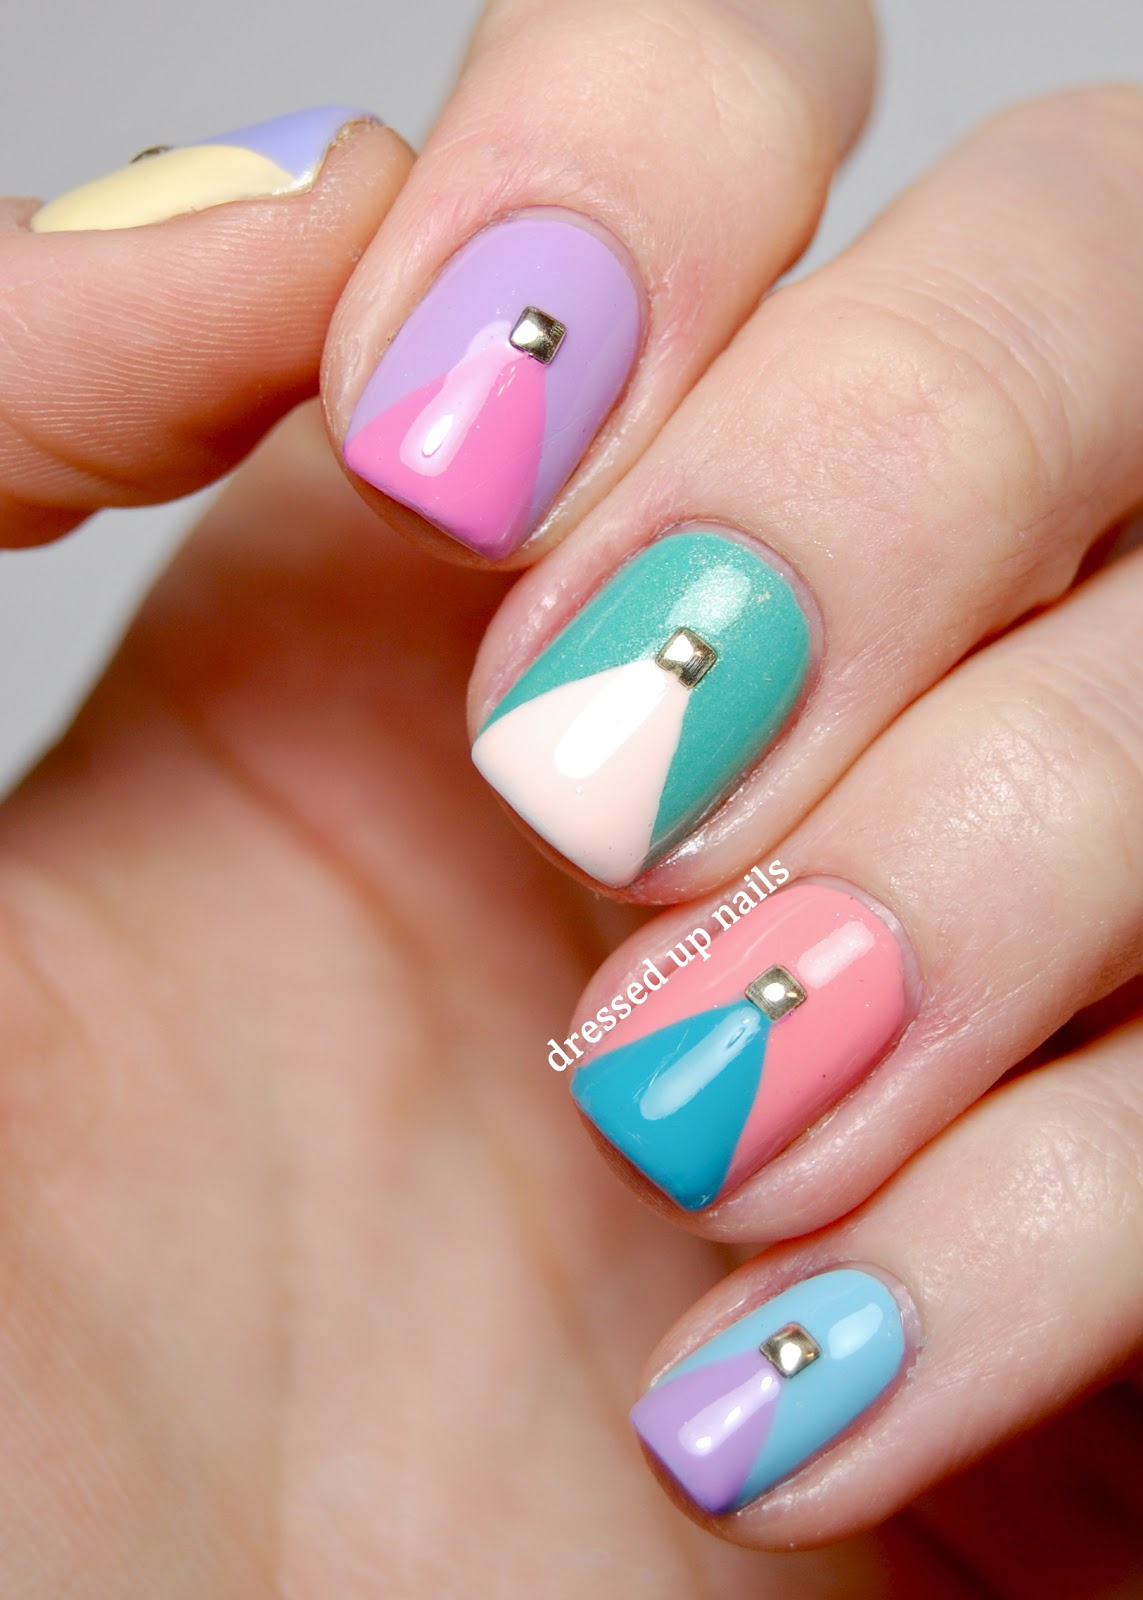 Nail Designs With One Color: .